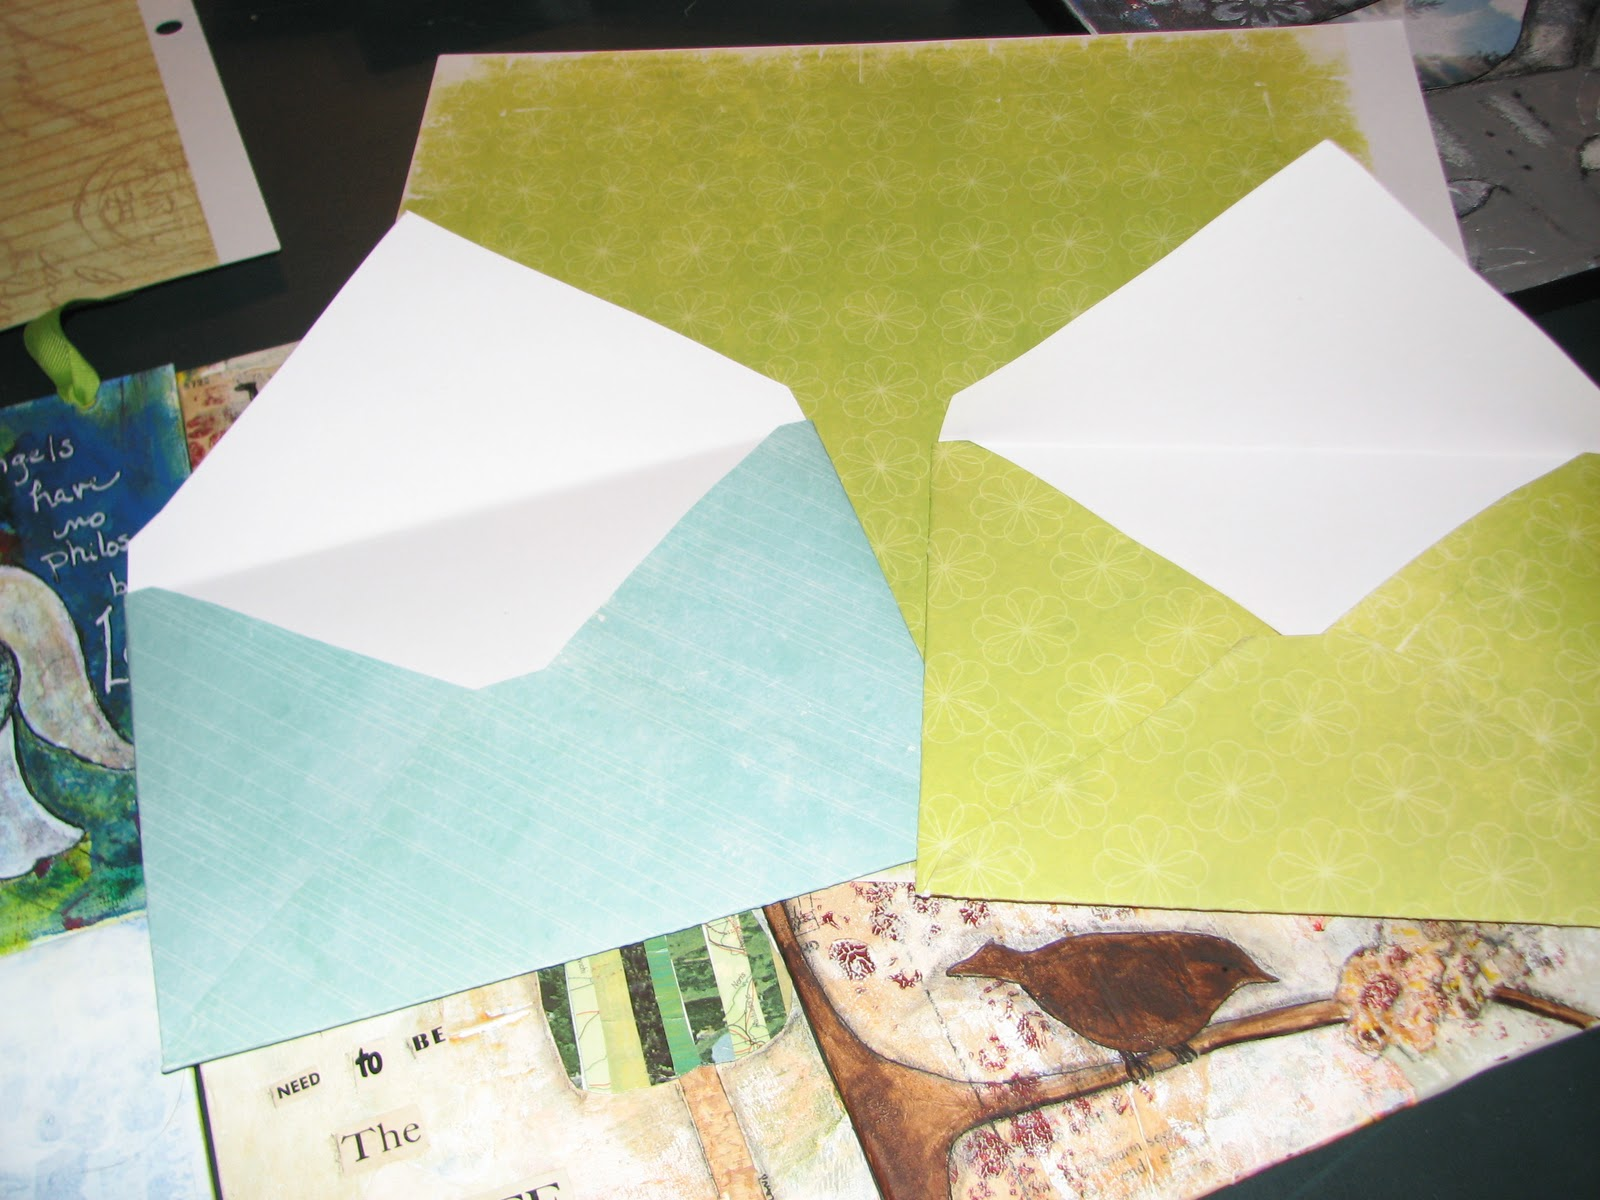 Scrapbook paper envelope template - I Tried A Couple Of Prototypes For Envelopes Before I Decided To Use An Envelope From A Card I Received From A Friend As A Template